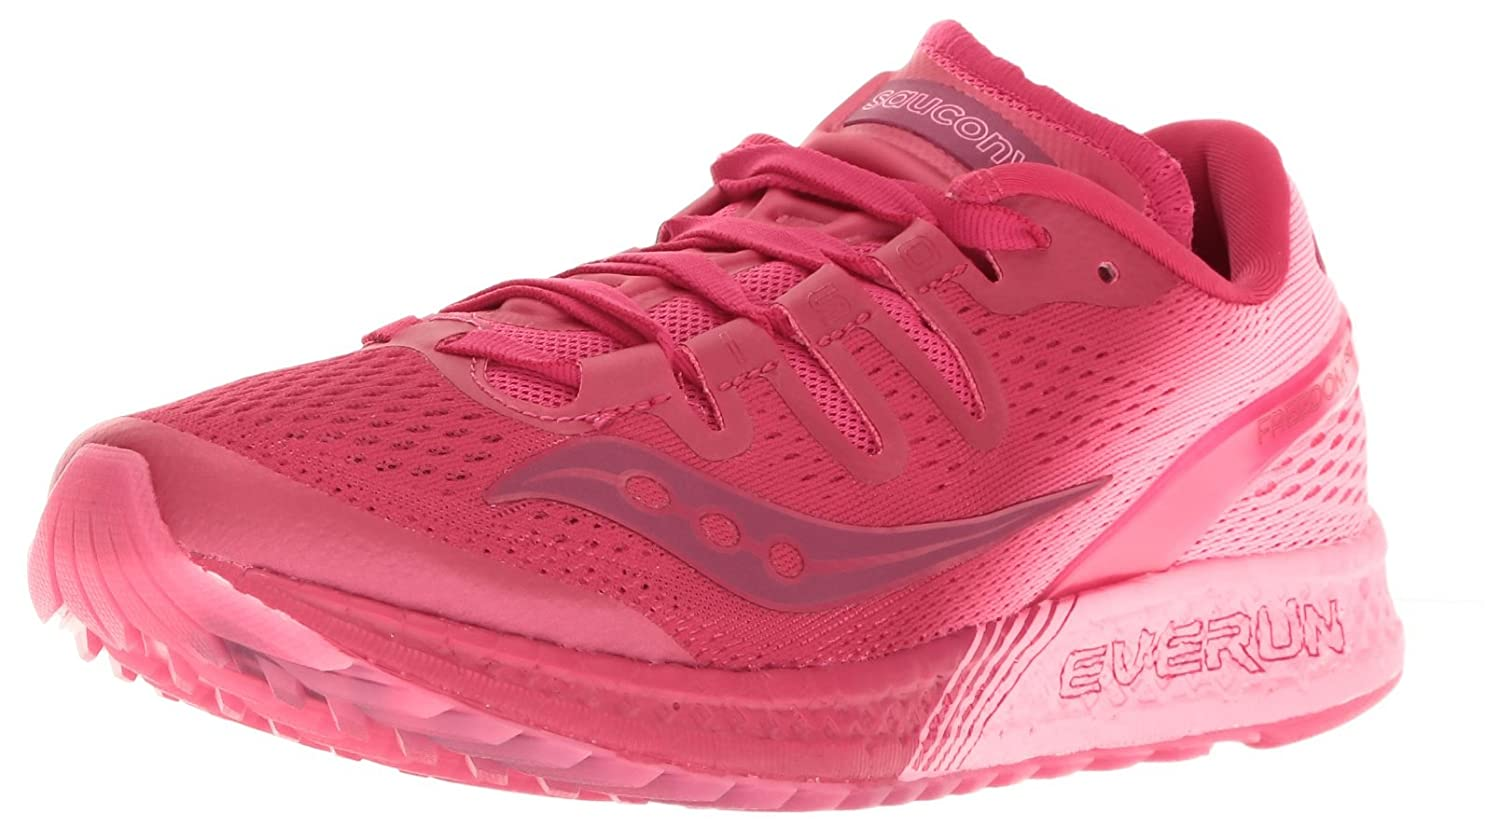 Saucony Women's Freedom ISO Running Shoe B01GIJQPDC 8 B(M) US|Berry/Pink